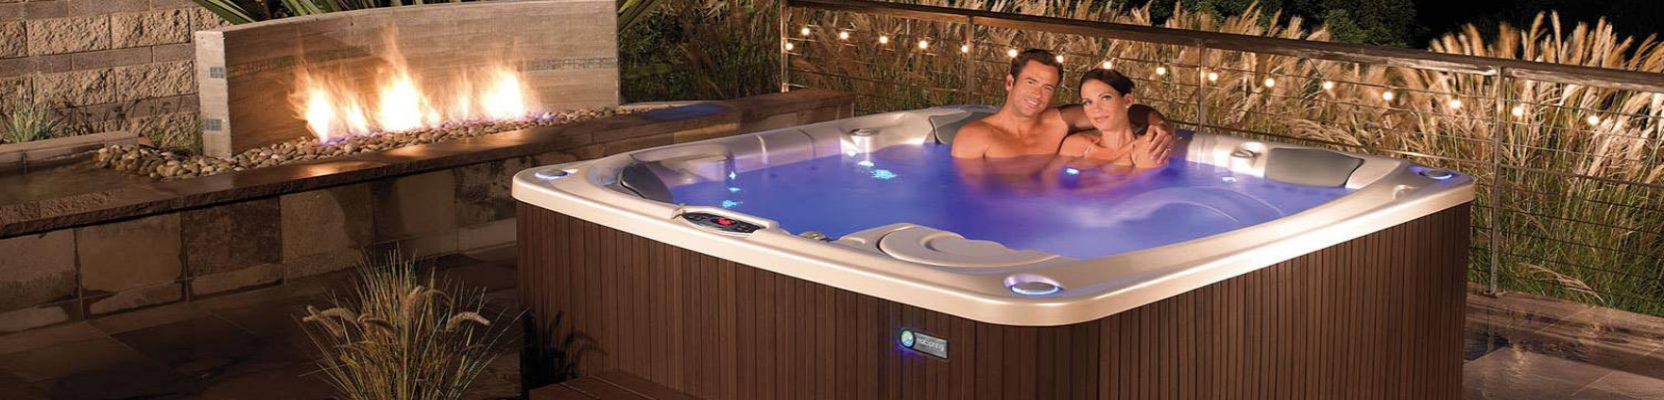 How much does a free hot tub cost? - Jersey Hot Tub Repair